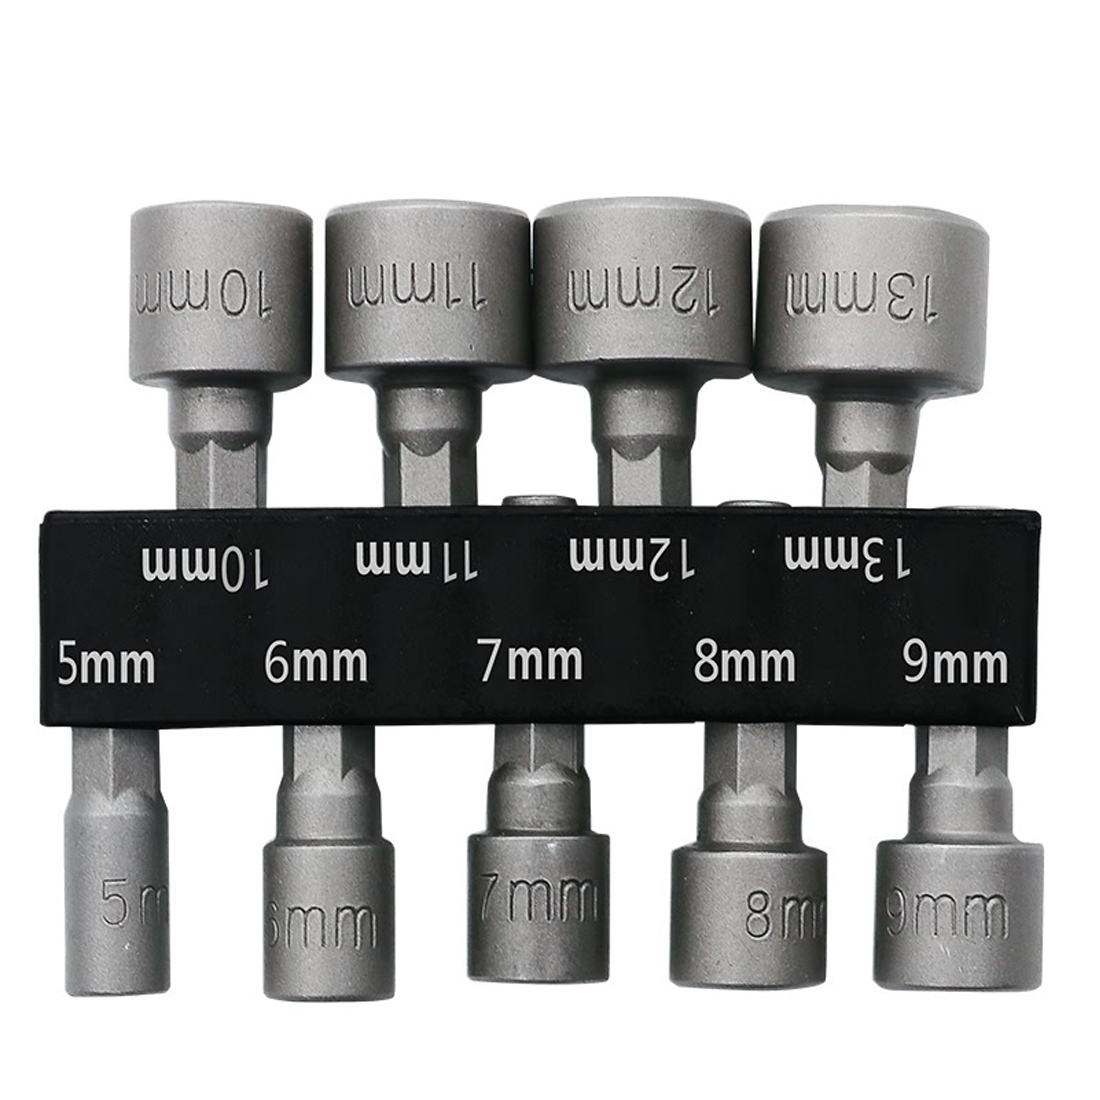 9pcs/set 5mm-13mm 1/4 Inch Hex Shank Socket Sleeve Nozzles Nut Driver Bit Set Drill Bit Adapter Hex Power Tools